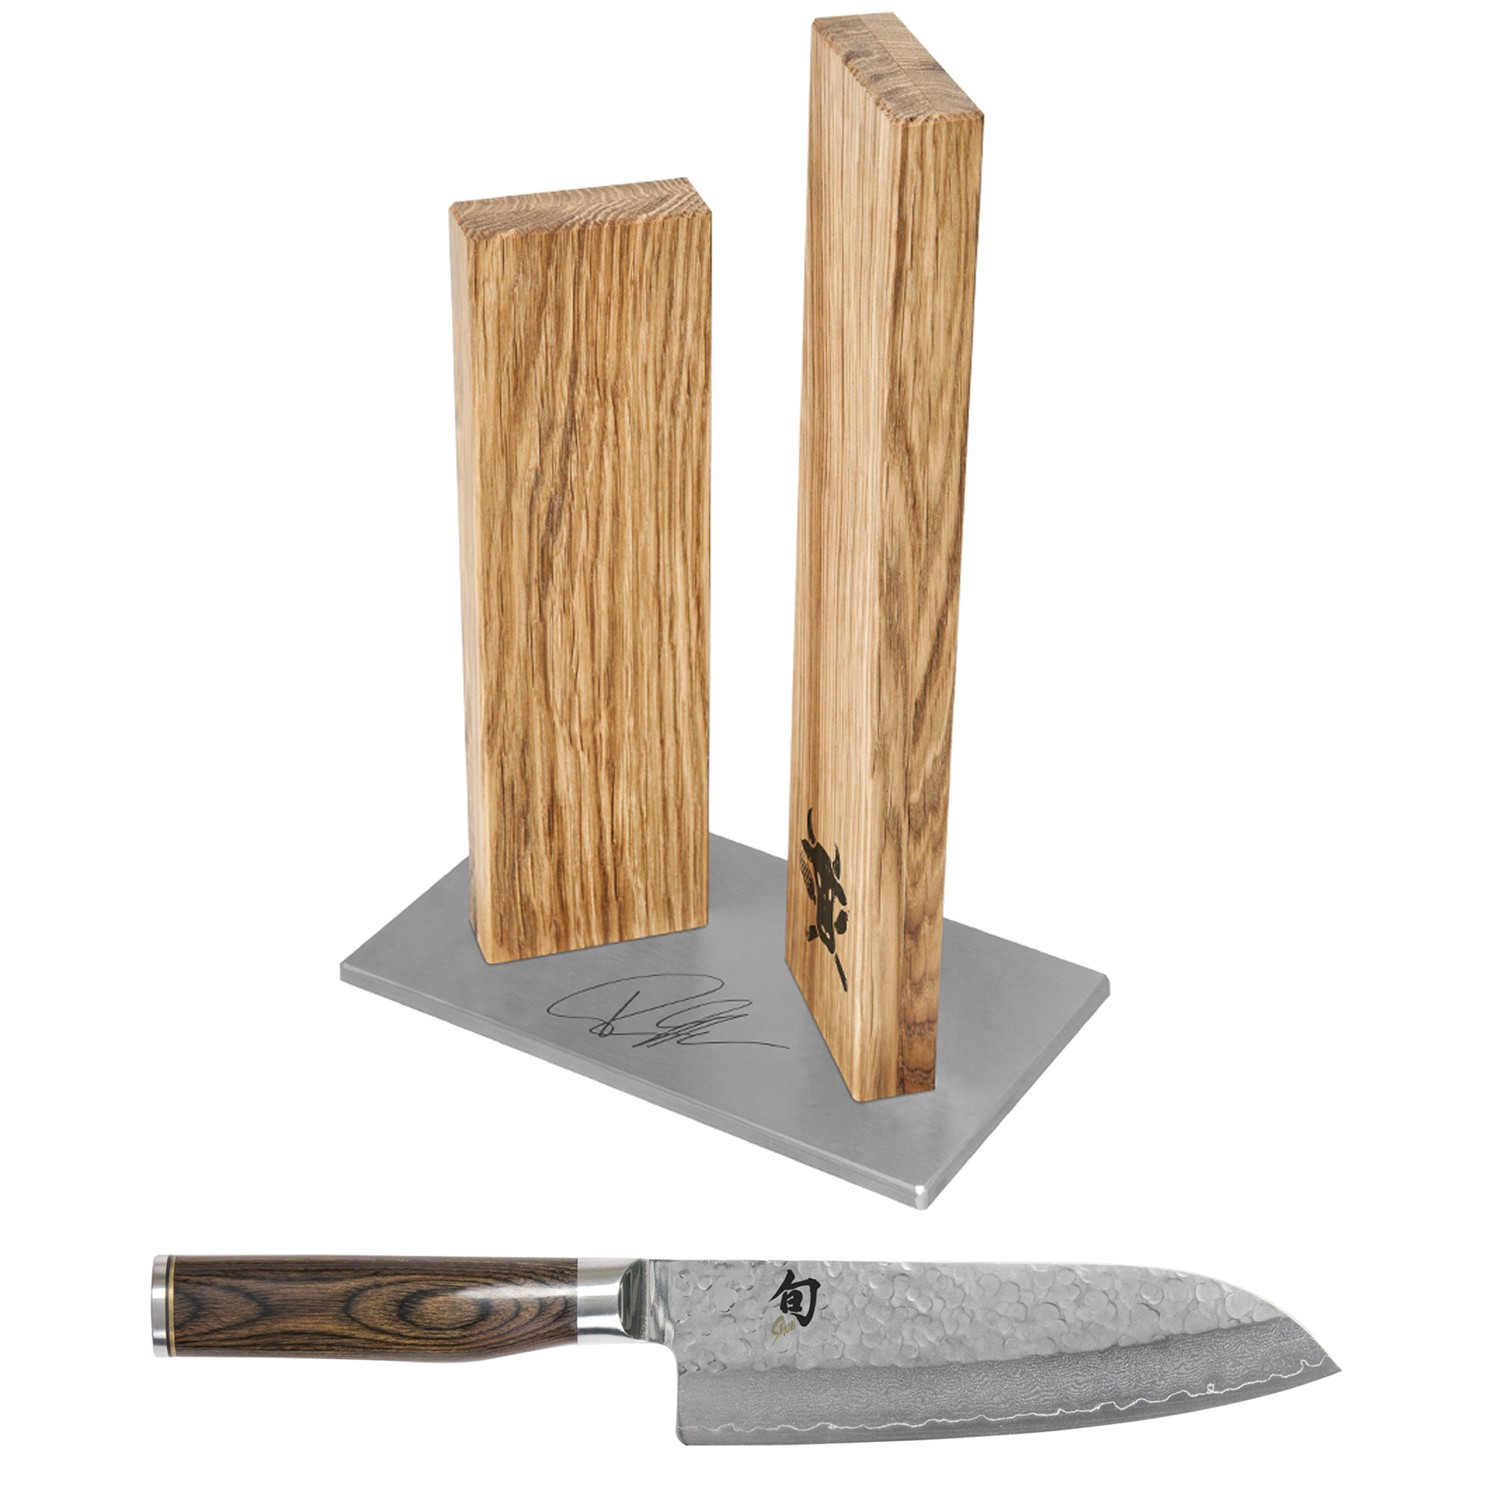 kai shun premier tim m lzer santoku messer messerblock. Black Bedroom Furniture Sets. Home Design Ideas